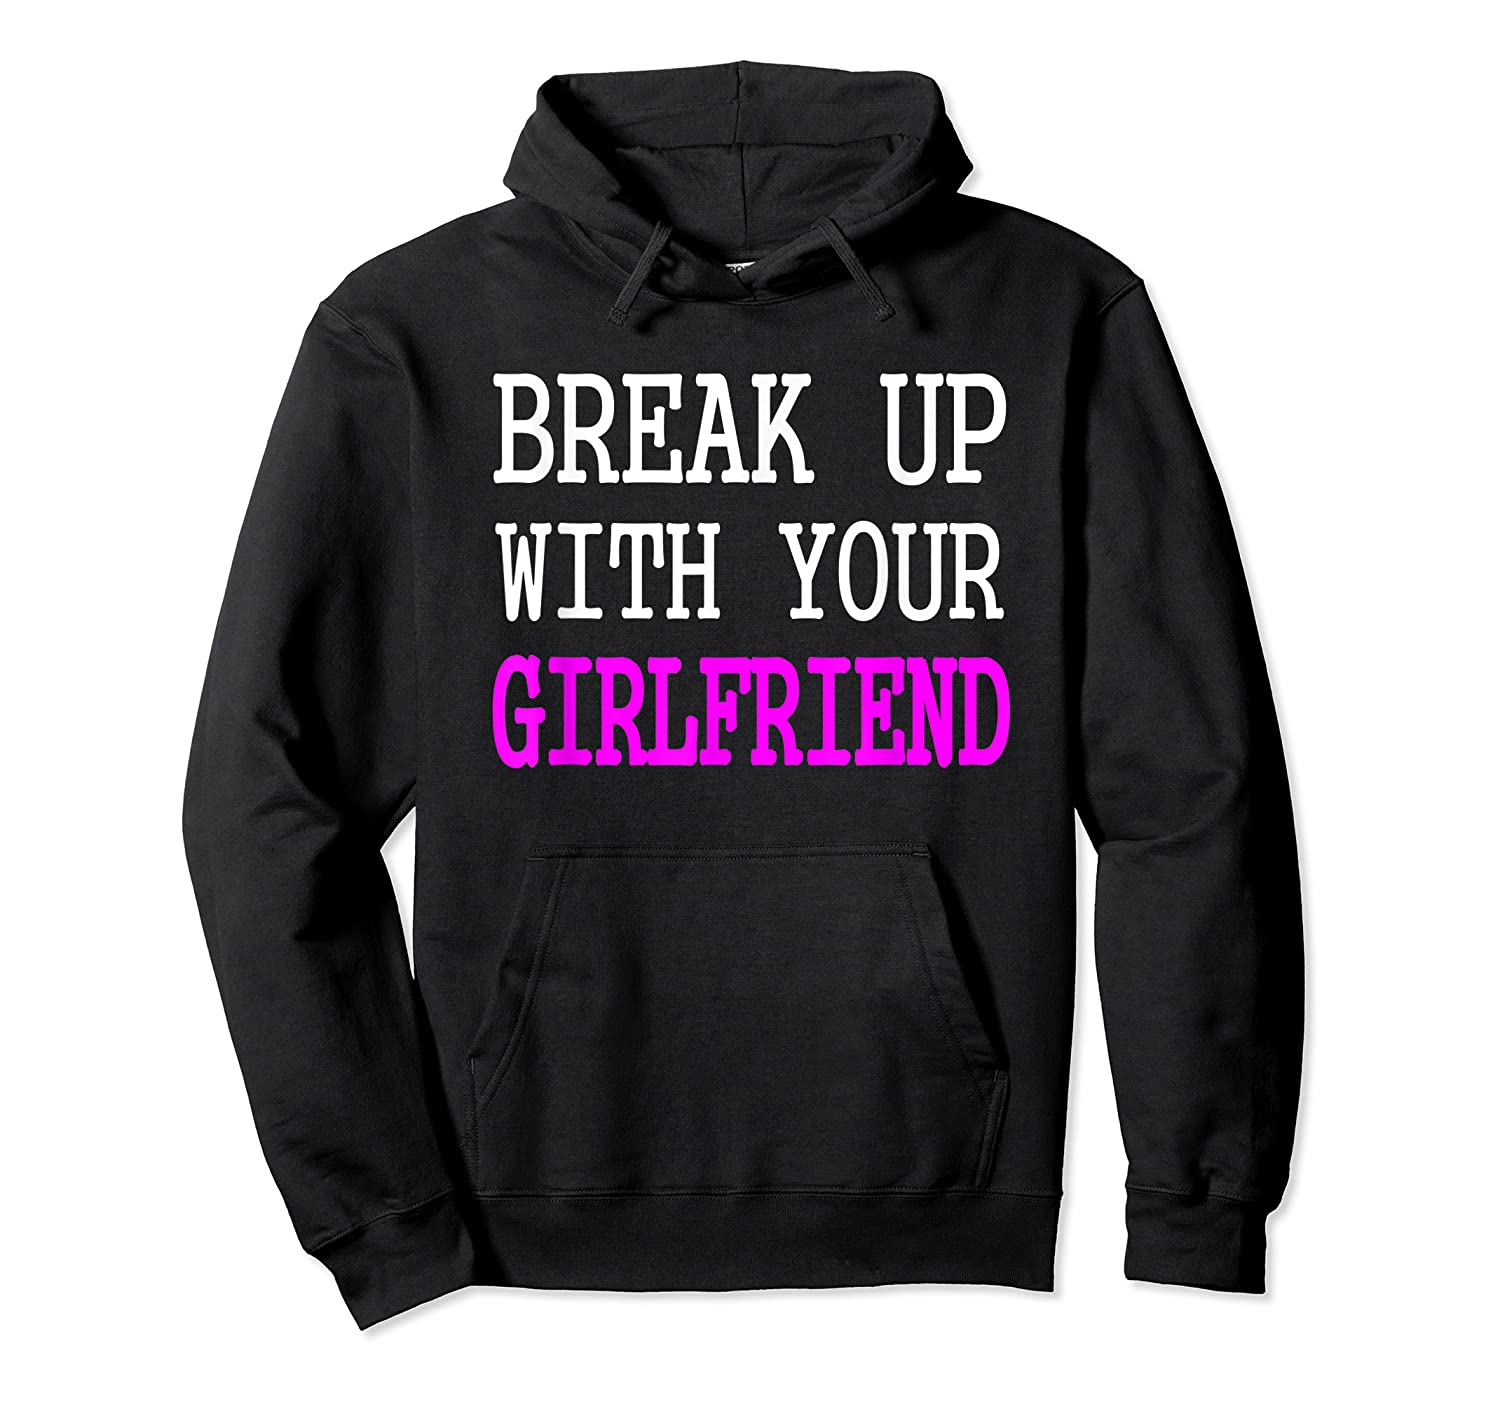 Break Up With Your Girlfriend T Shirt Im Bored Single Shirt Unisex Pullover Hoodie